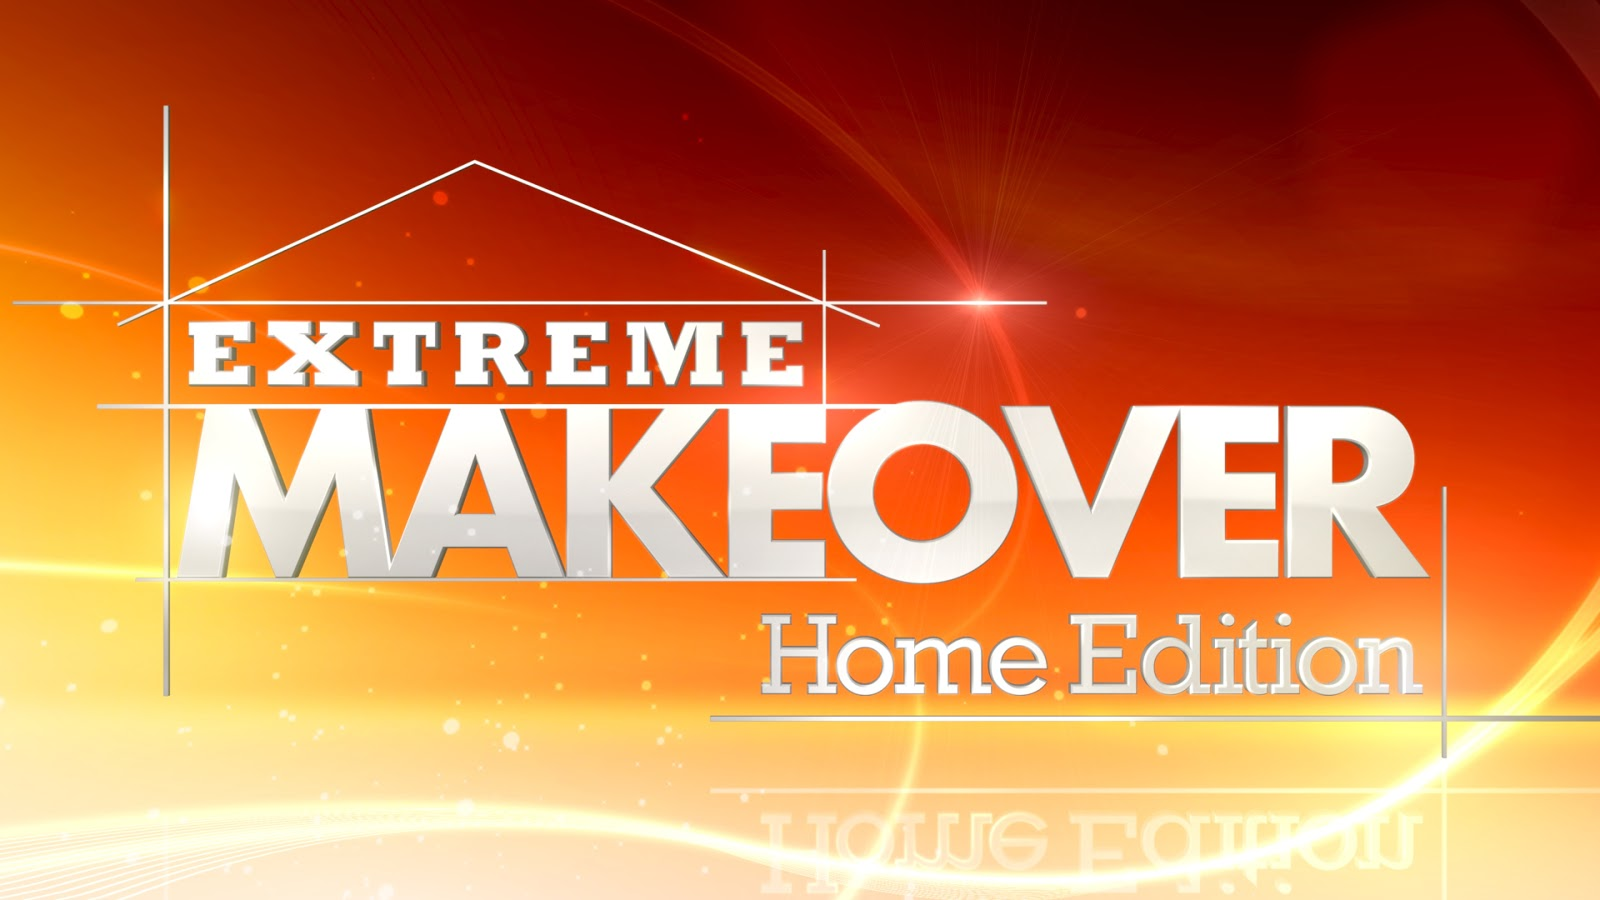 Star Wars Episode Of Extreme Makeover Home Edition The